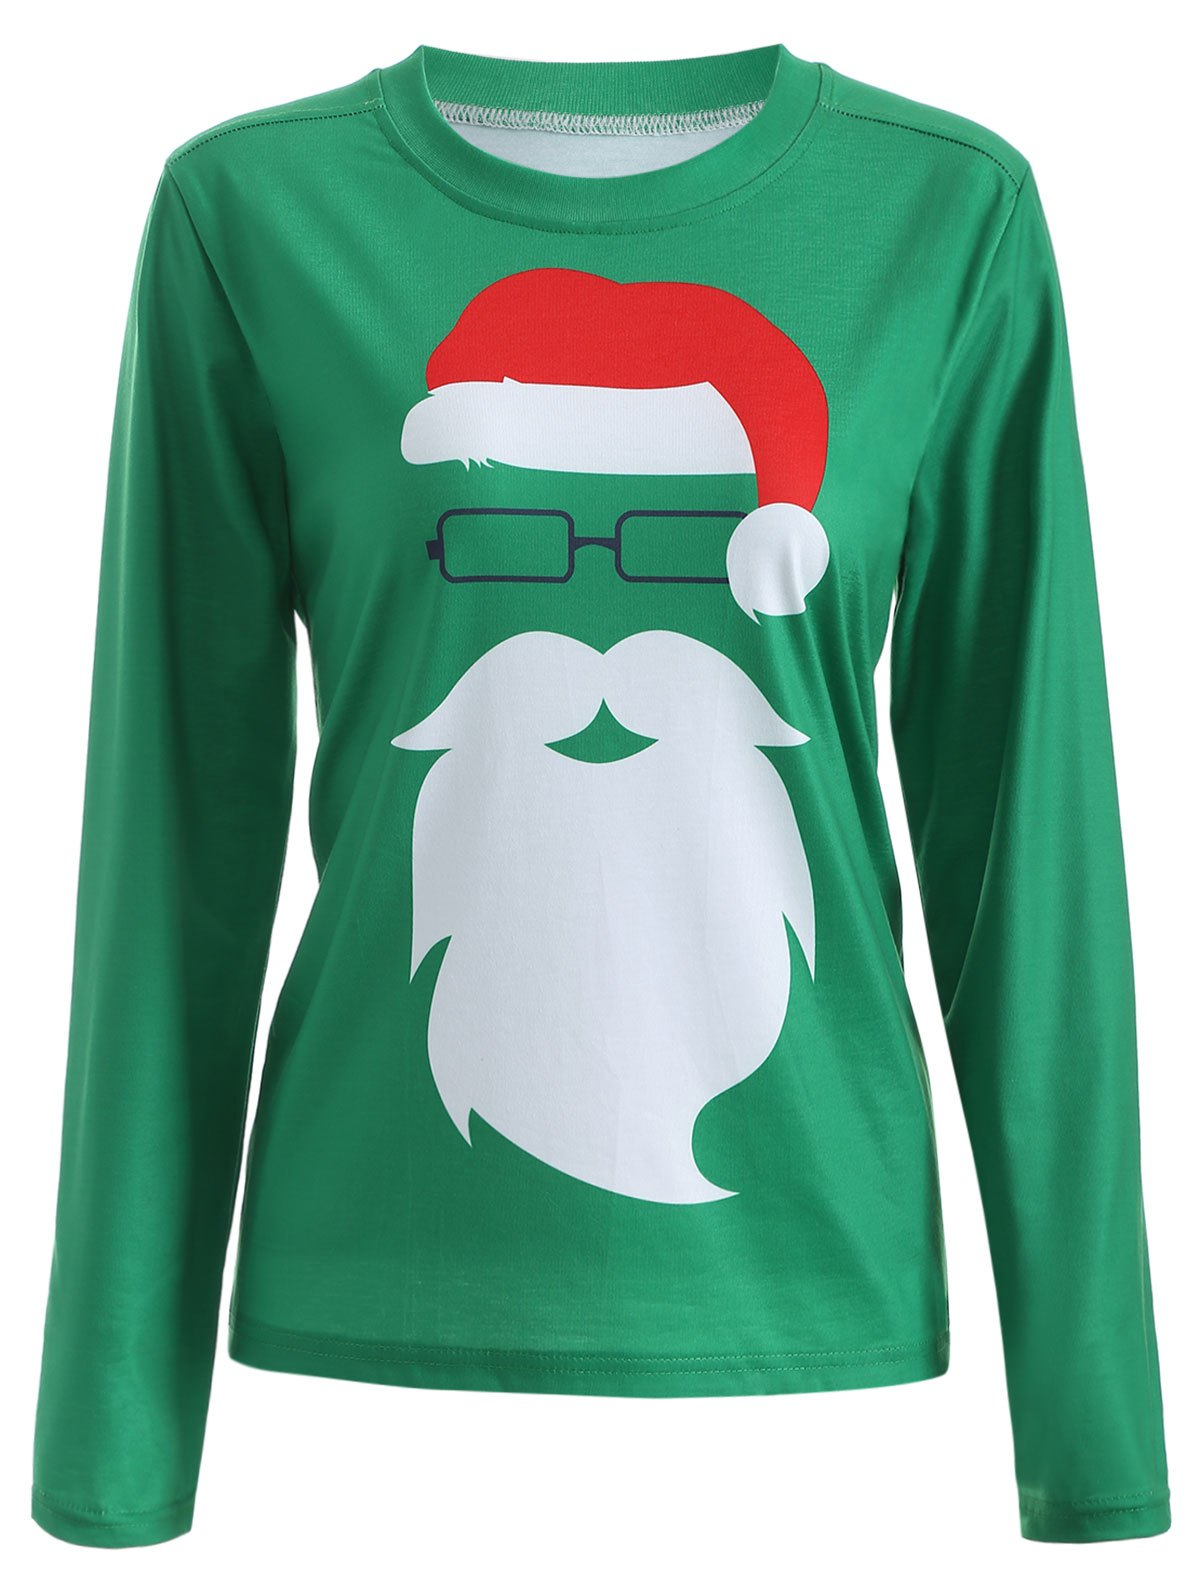 Santa Claus Graphic Christmas Long Sleeve T-Shirt - GREEN M